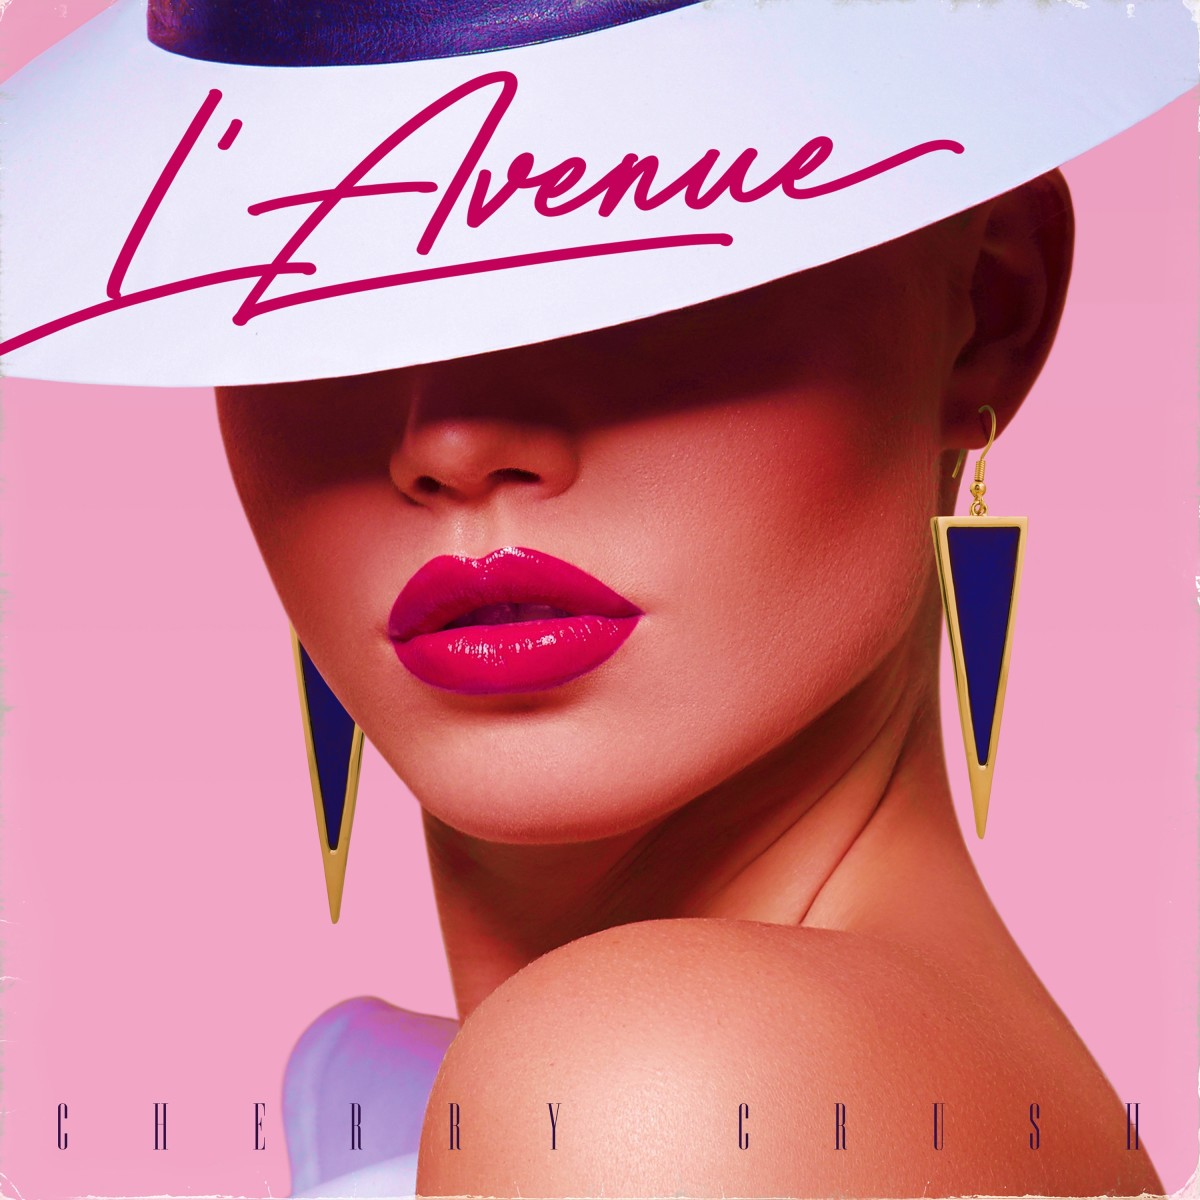 #Synthfam Interview: L'Avenue